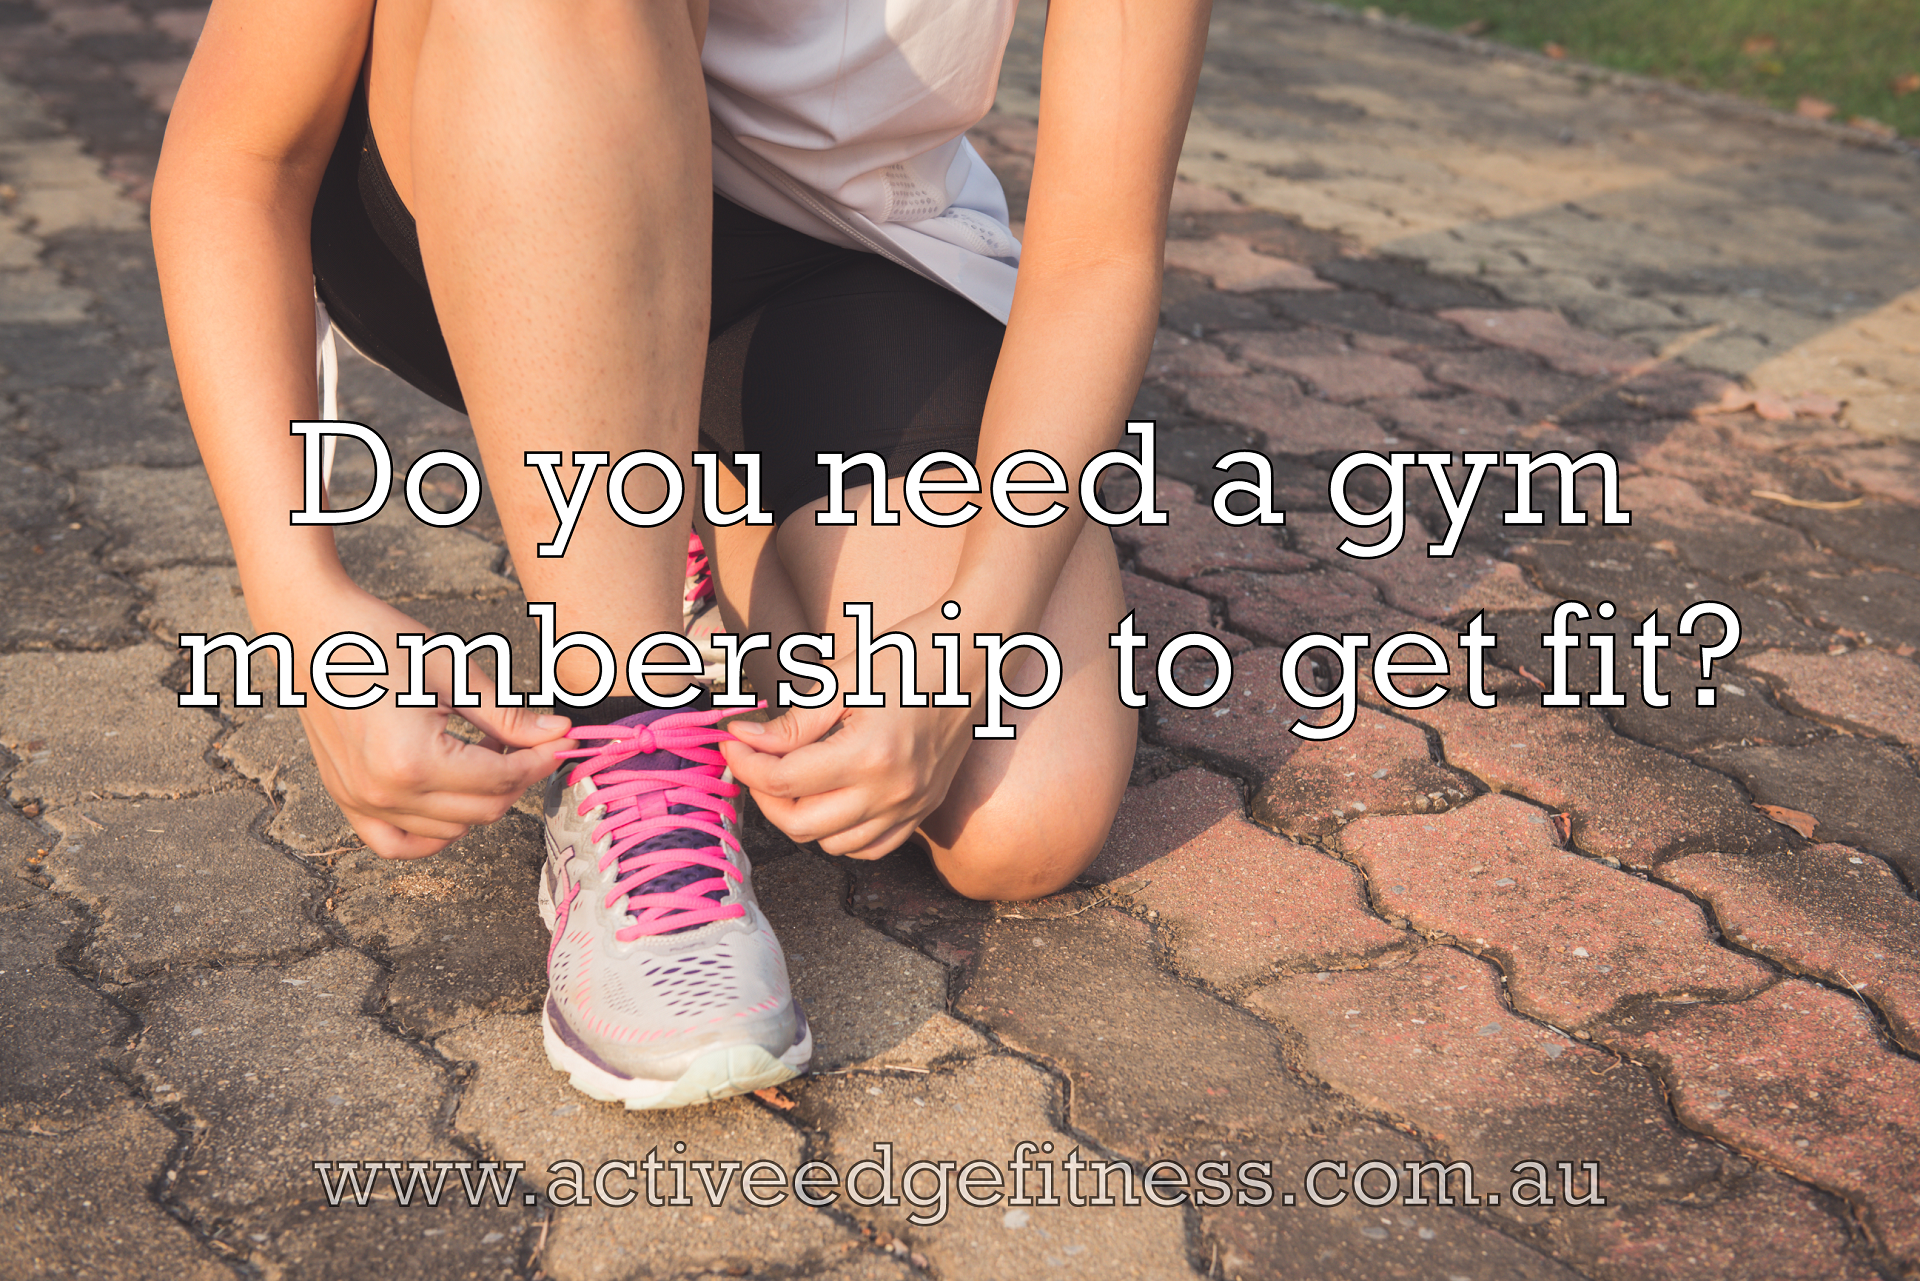 """Woman tying her shoelaces preparing to go for a run outside with caption """"Do you need a gym membership to get fit?"""